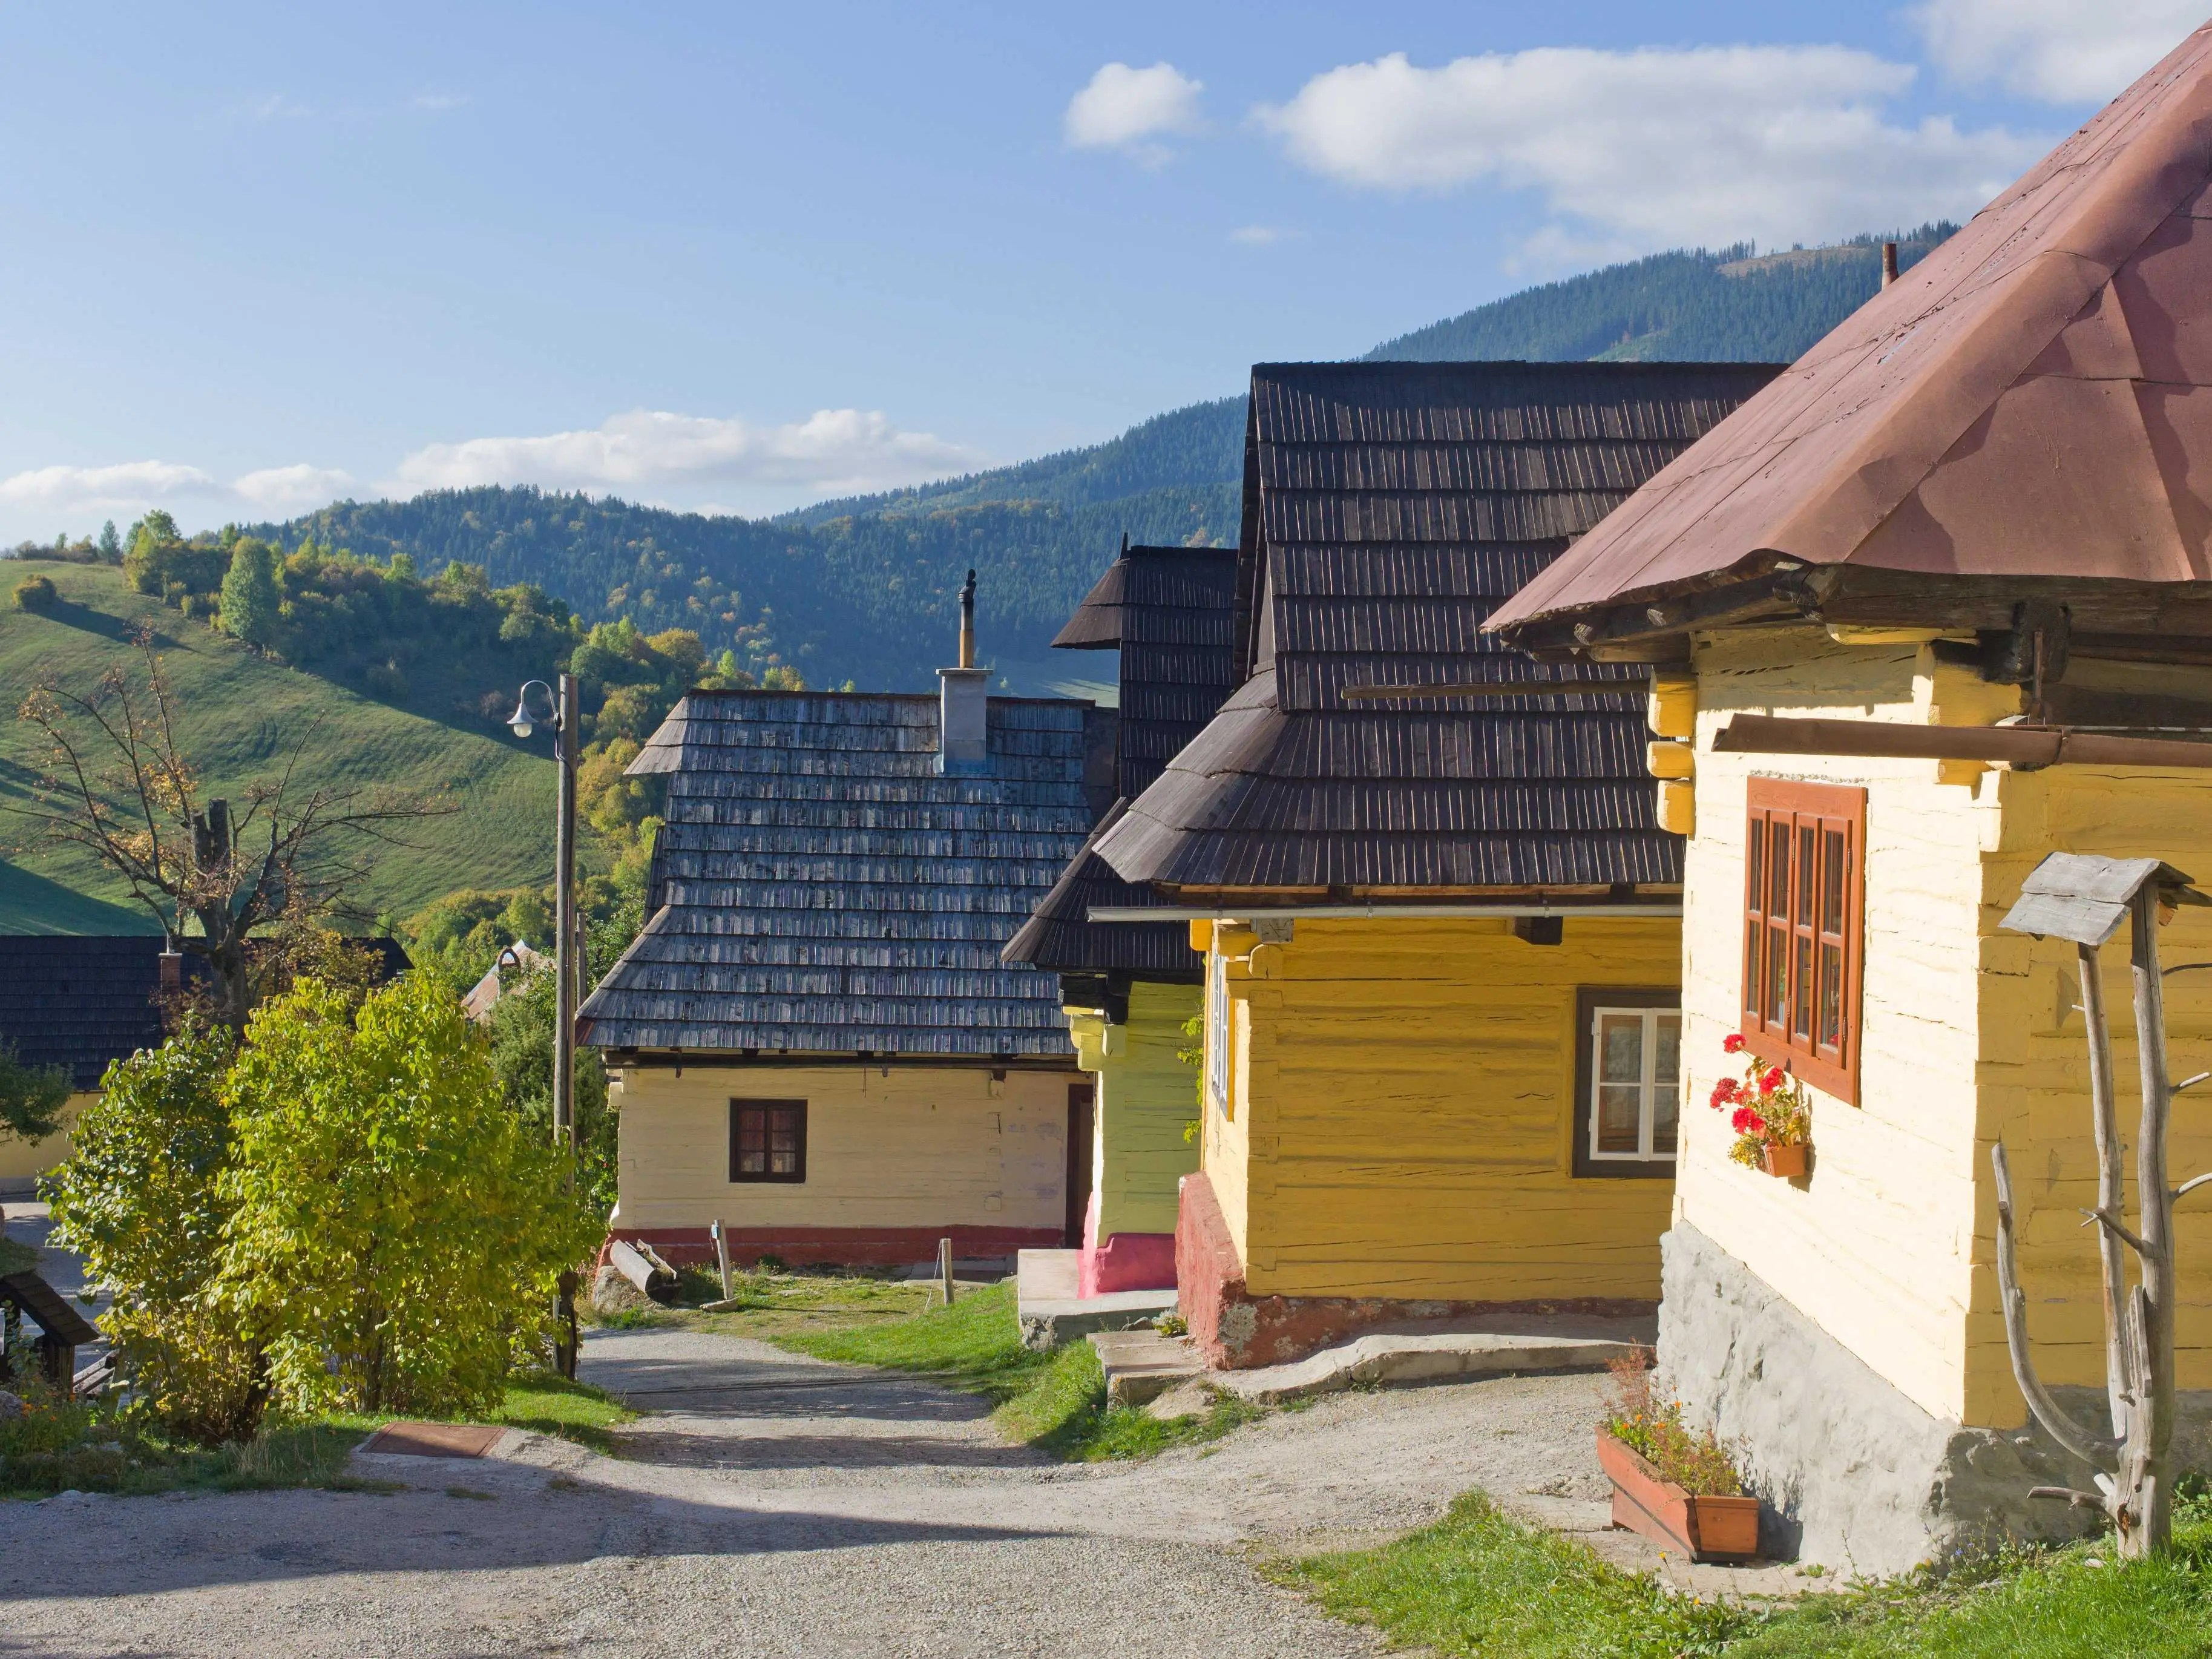 Vlkolínec, a village that resides under the administration of Ružomberok in Slovakia, maintains more than 40 unaltered buildings from 1376. The village still hosts traditional log houses that were once popular, as well as the elongated strip-shape characteristic of medieval land allotment.